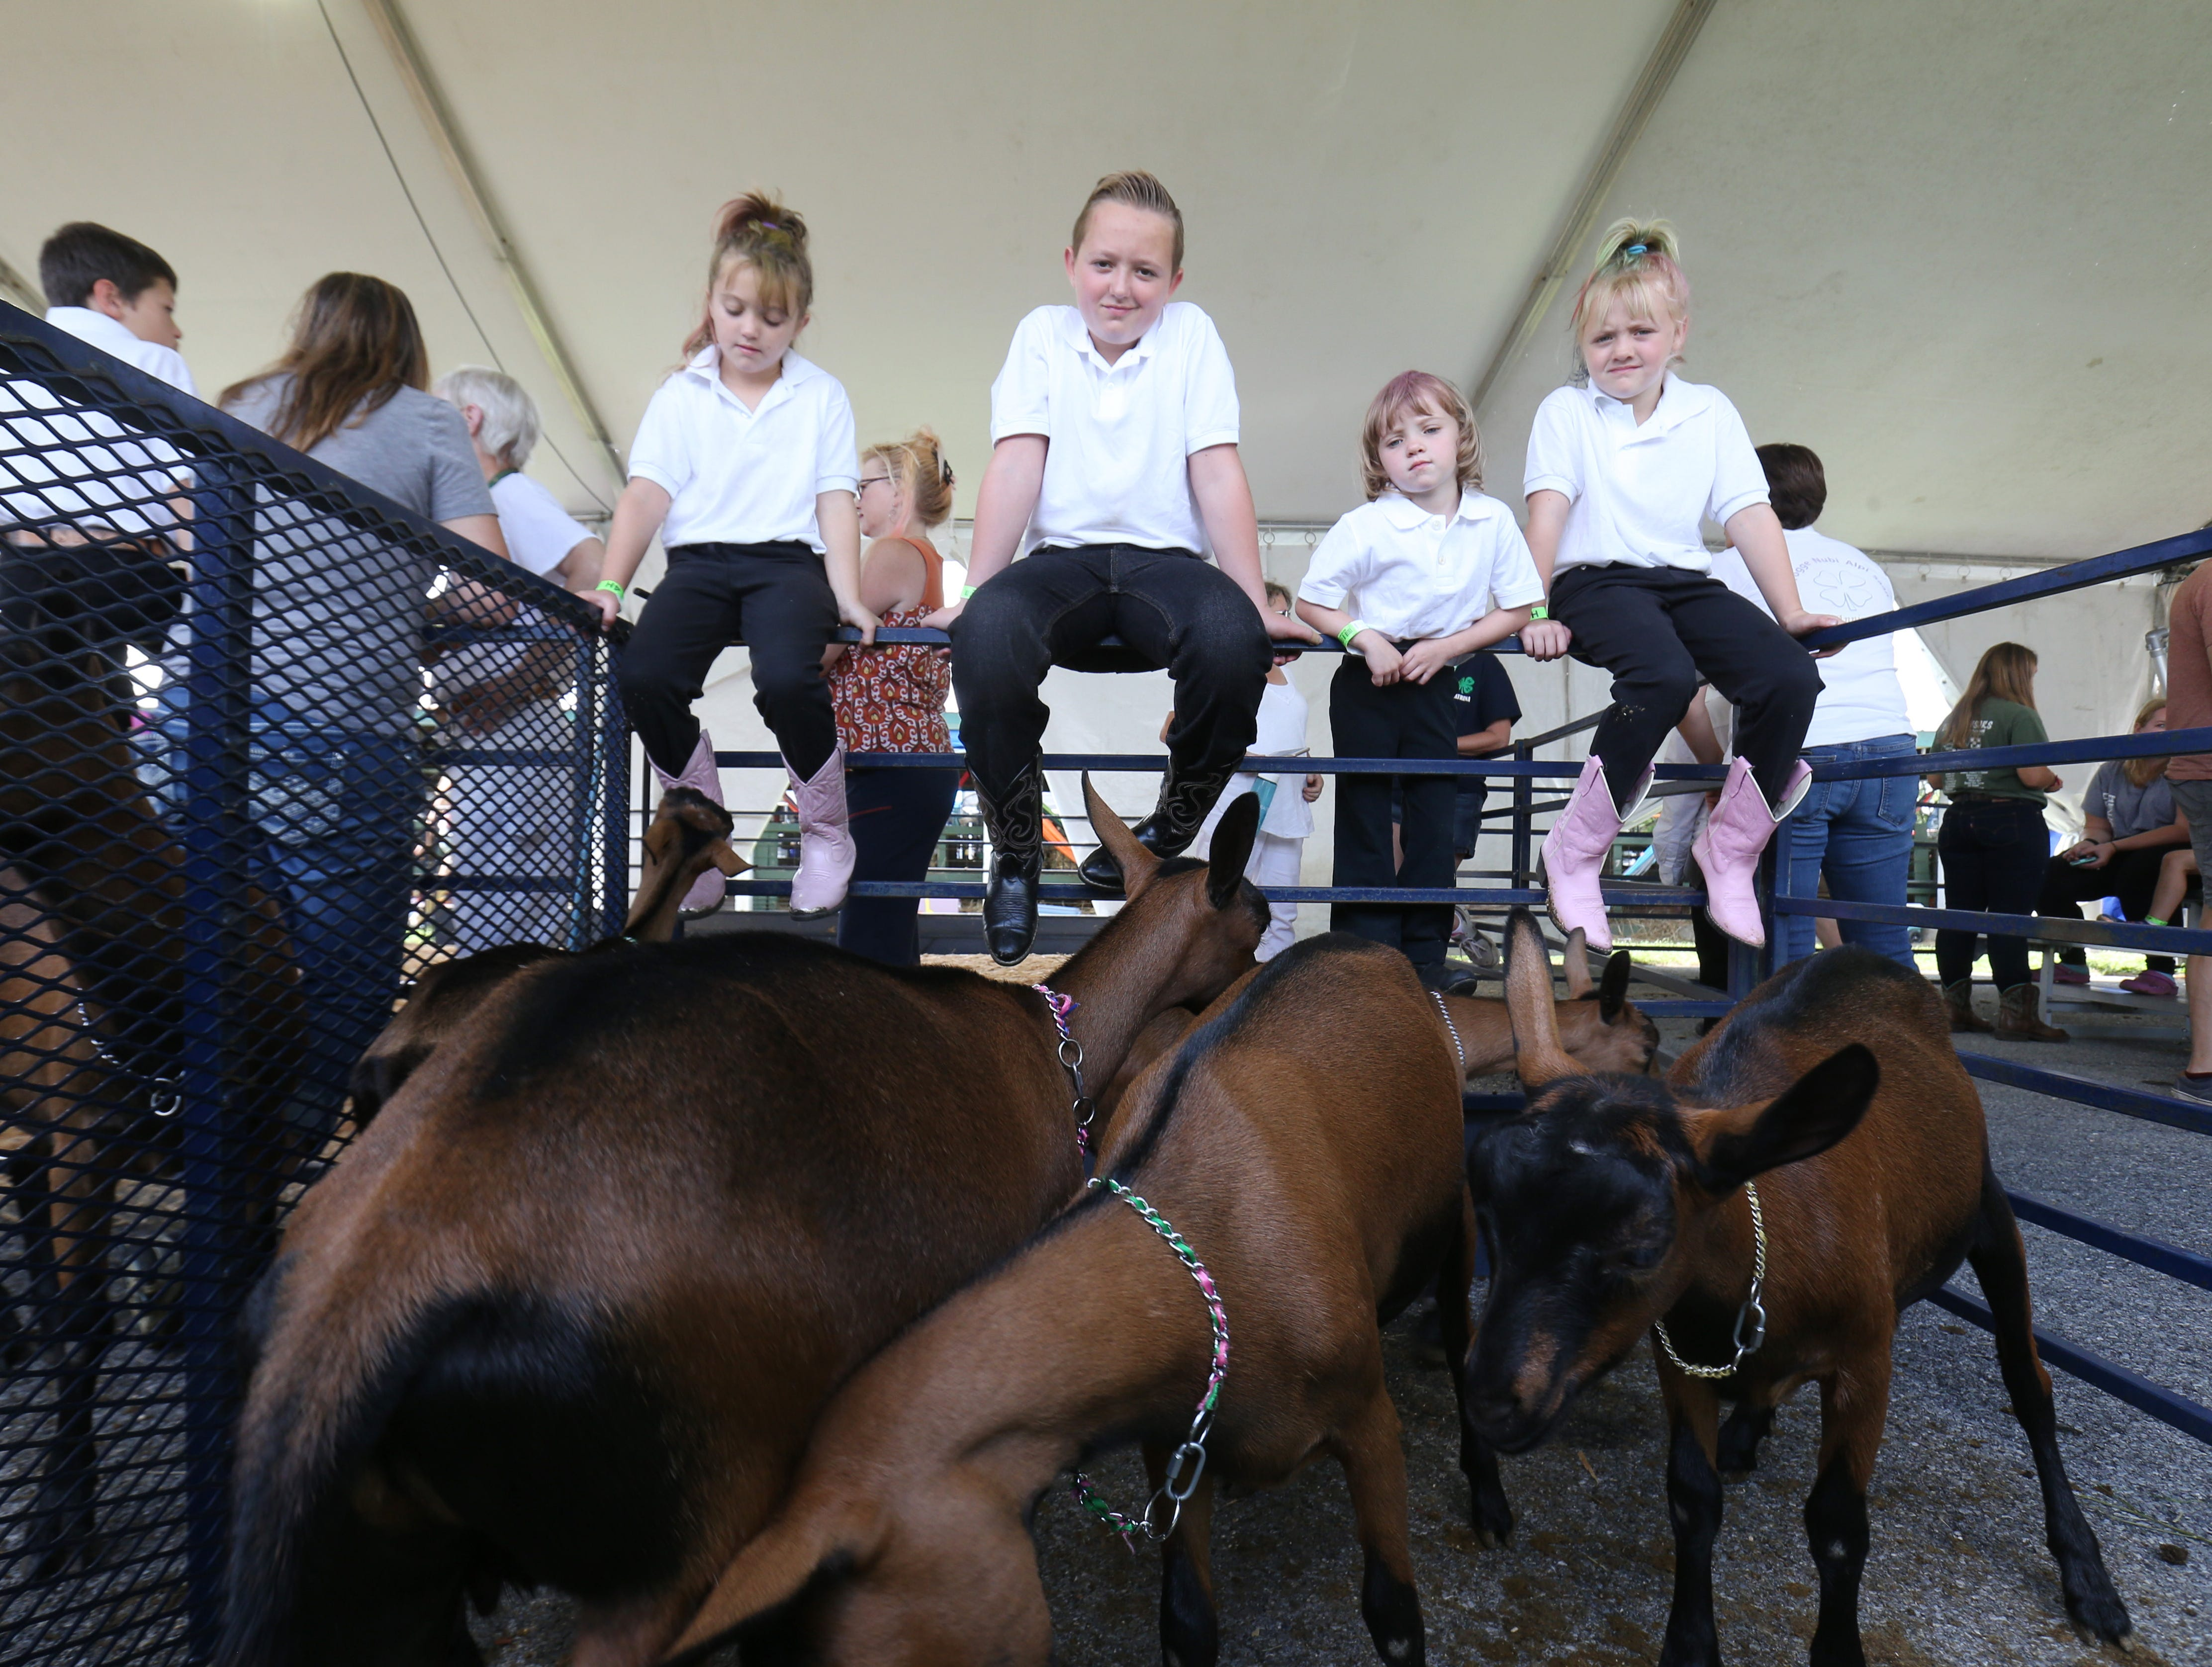 From left Sienna, Frankie, Jesse and Kendra Carpentieri of LaGrangeville with the goats they are showing on the opening day of the Dutchess County Fair in Rhinebeck on August 21 2018.  The Carpentieris are members of the Kids 4 Kids Dairy Goat Club.